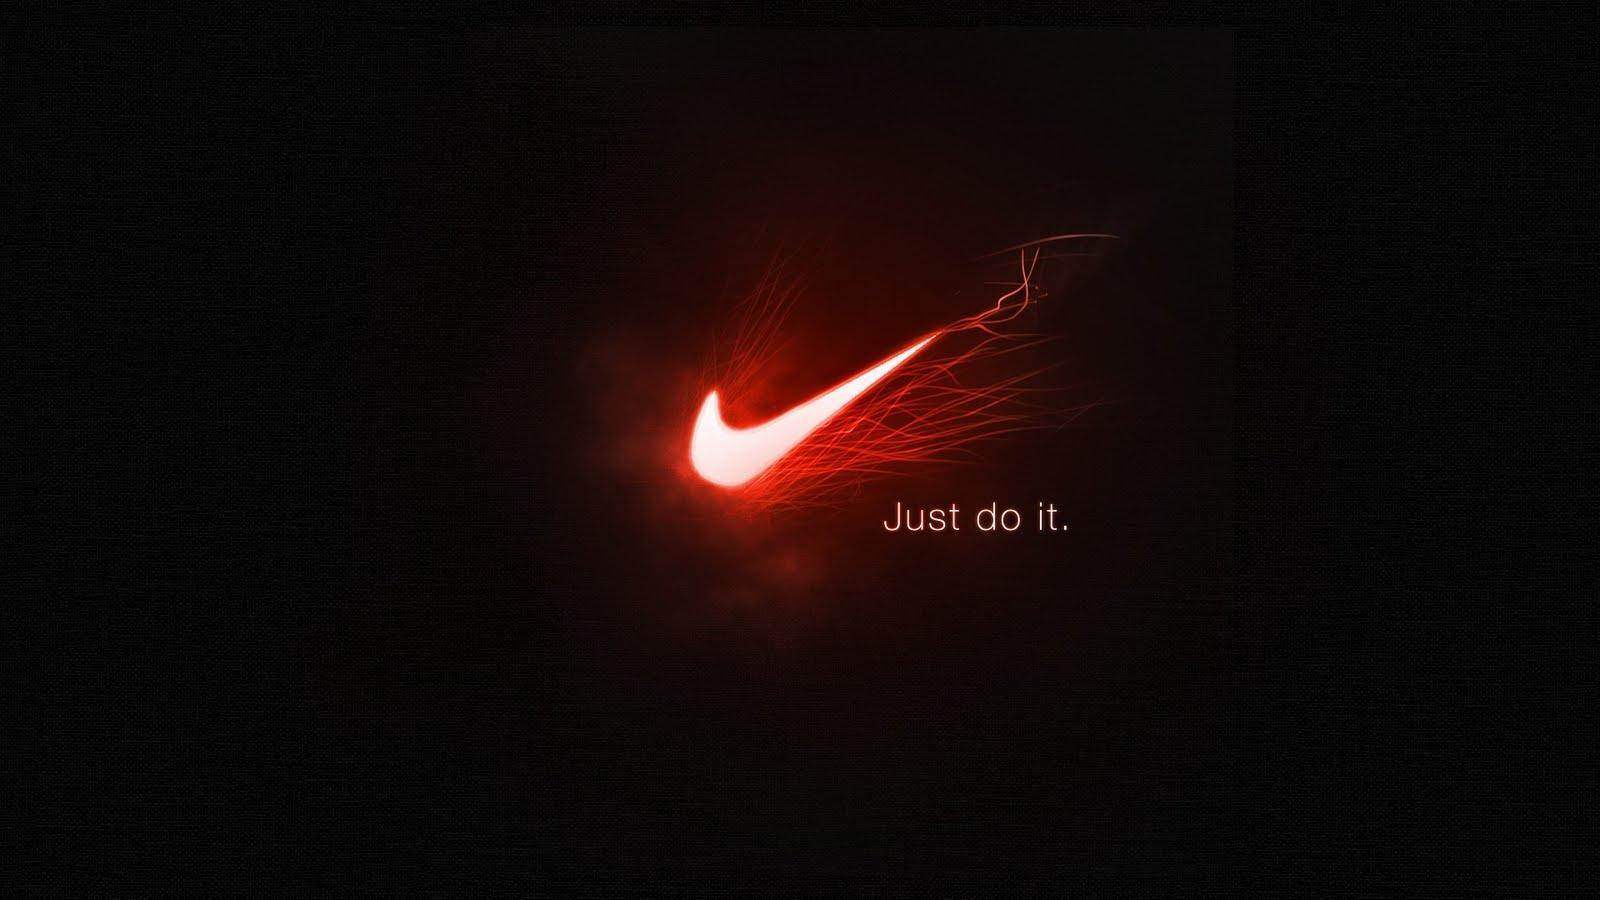 wallpaper nike signs - photo #18